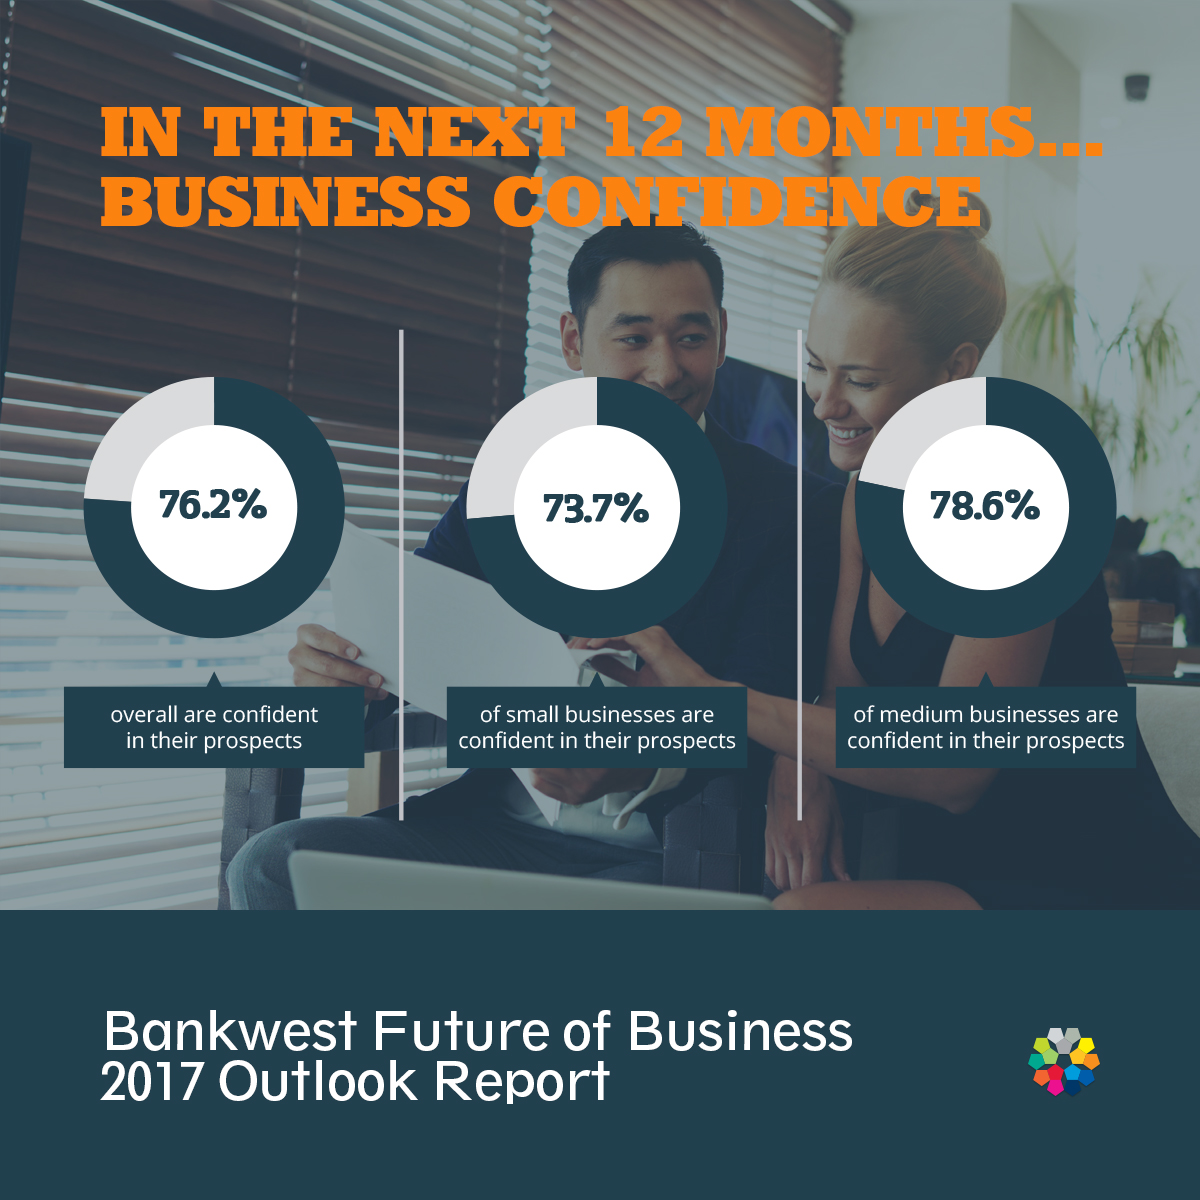 Bankwest Future of Business 2017 Outlook Report - Business confidence